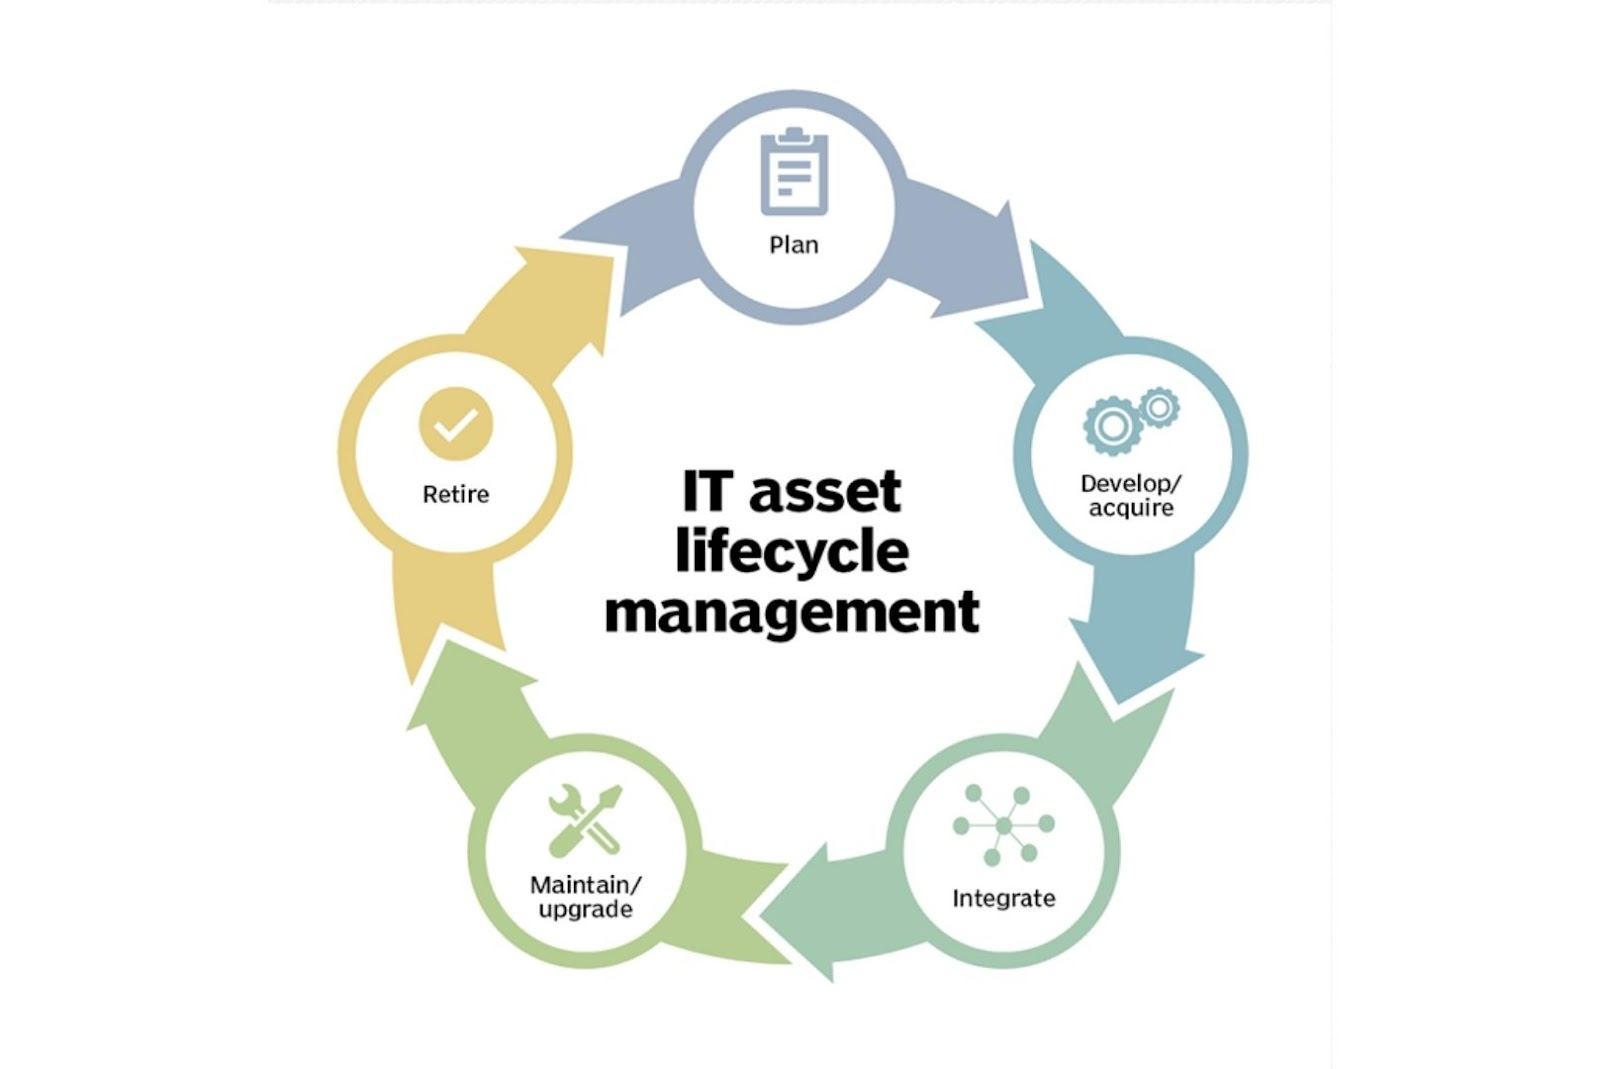 IT asset lifecycle management